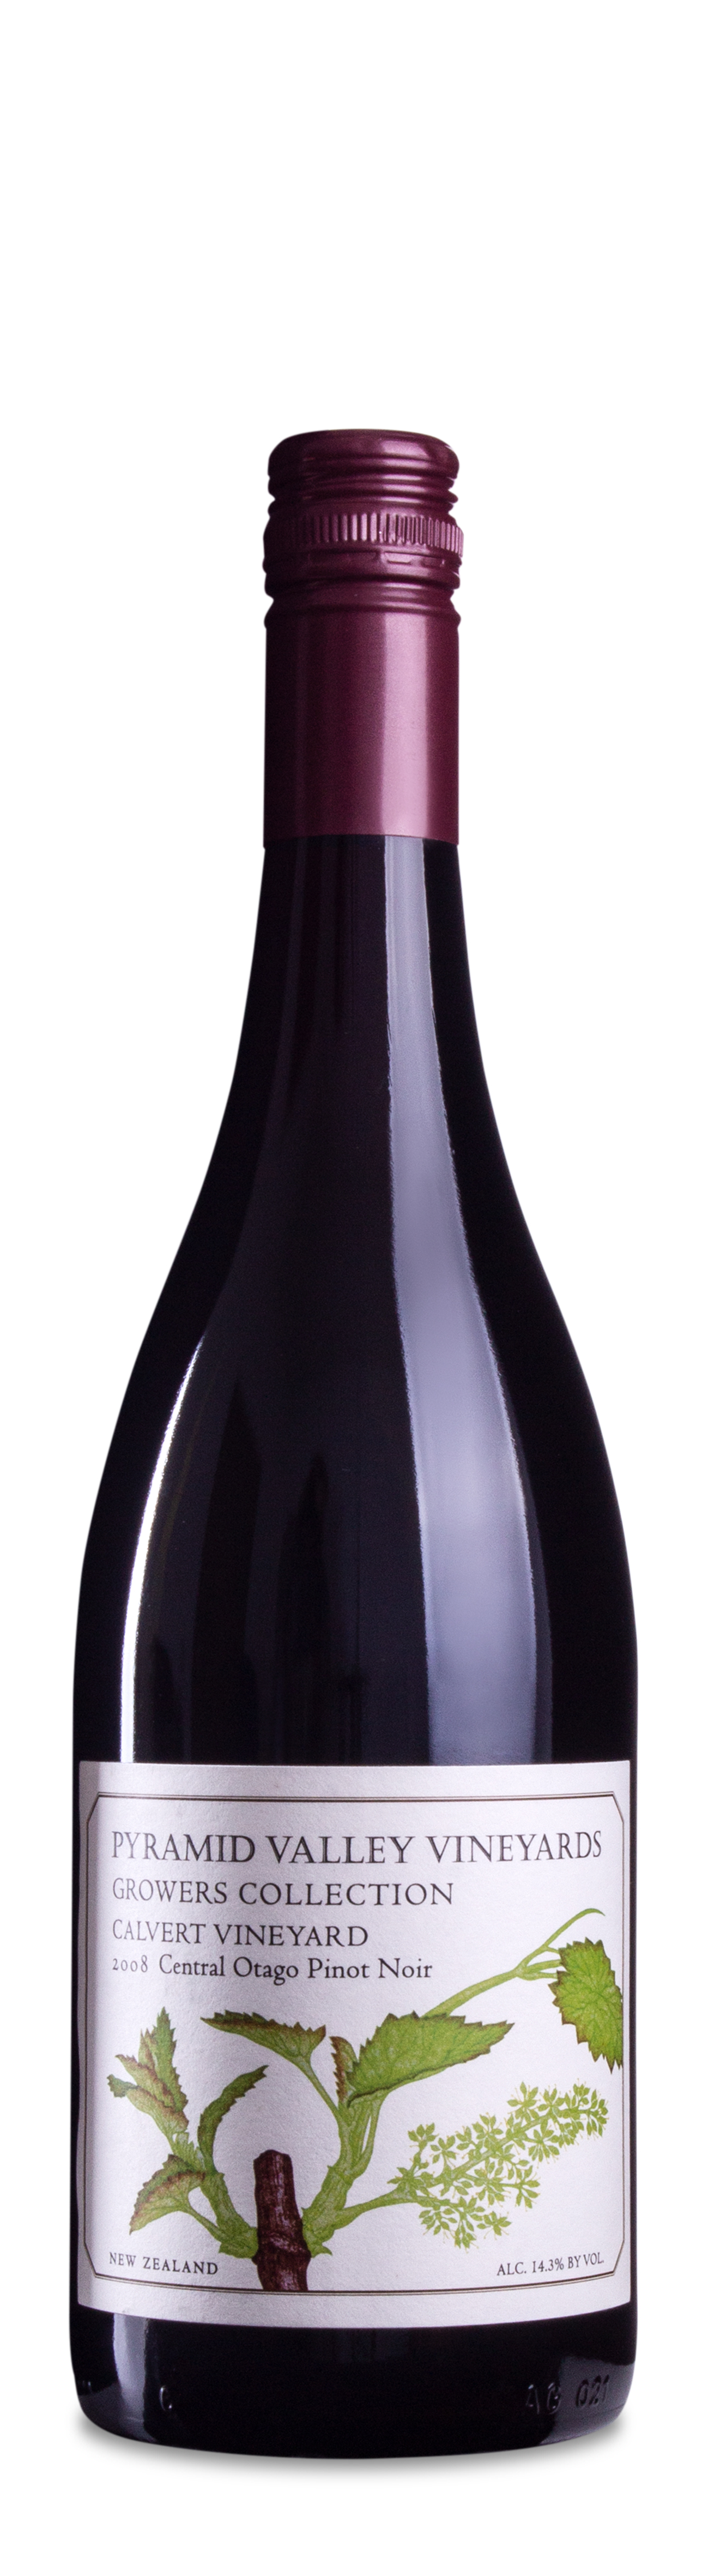 2008 Pyramid Valley Vineyard Calvert Vineyard Pinot Noir